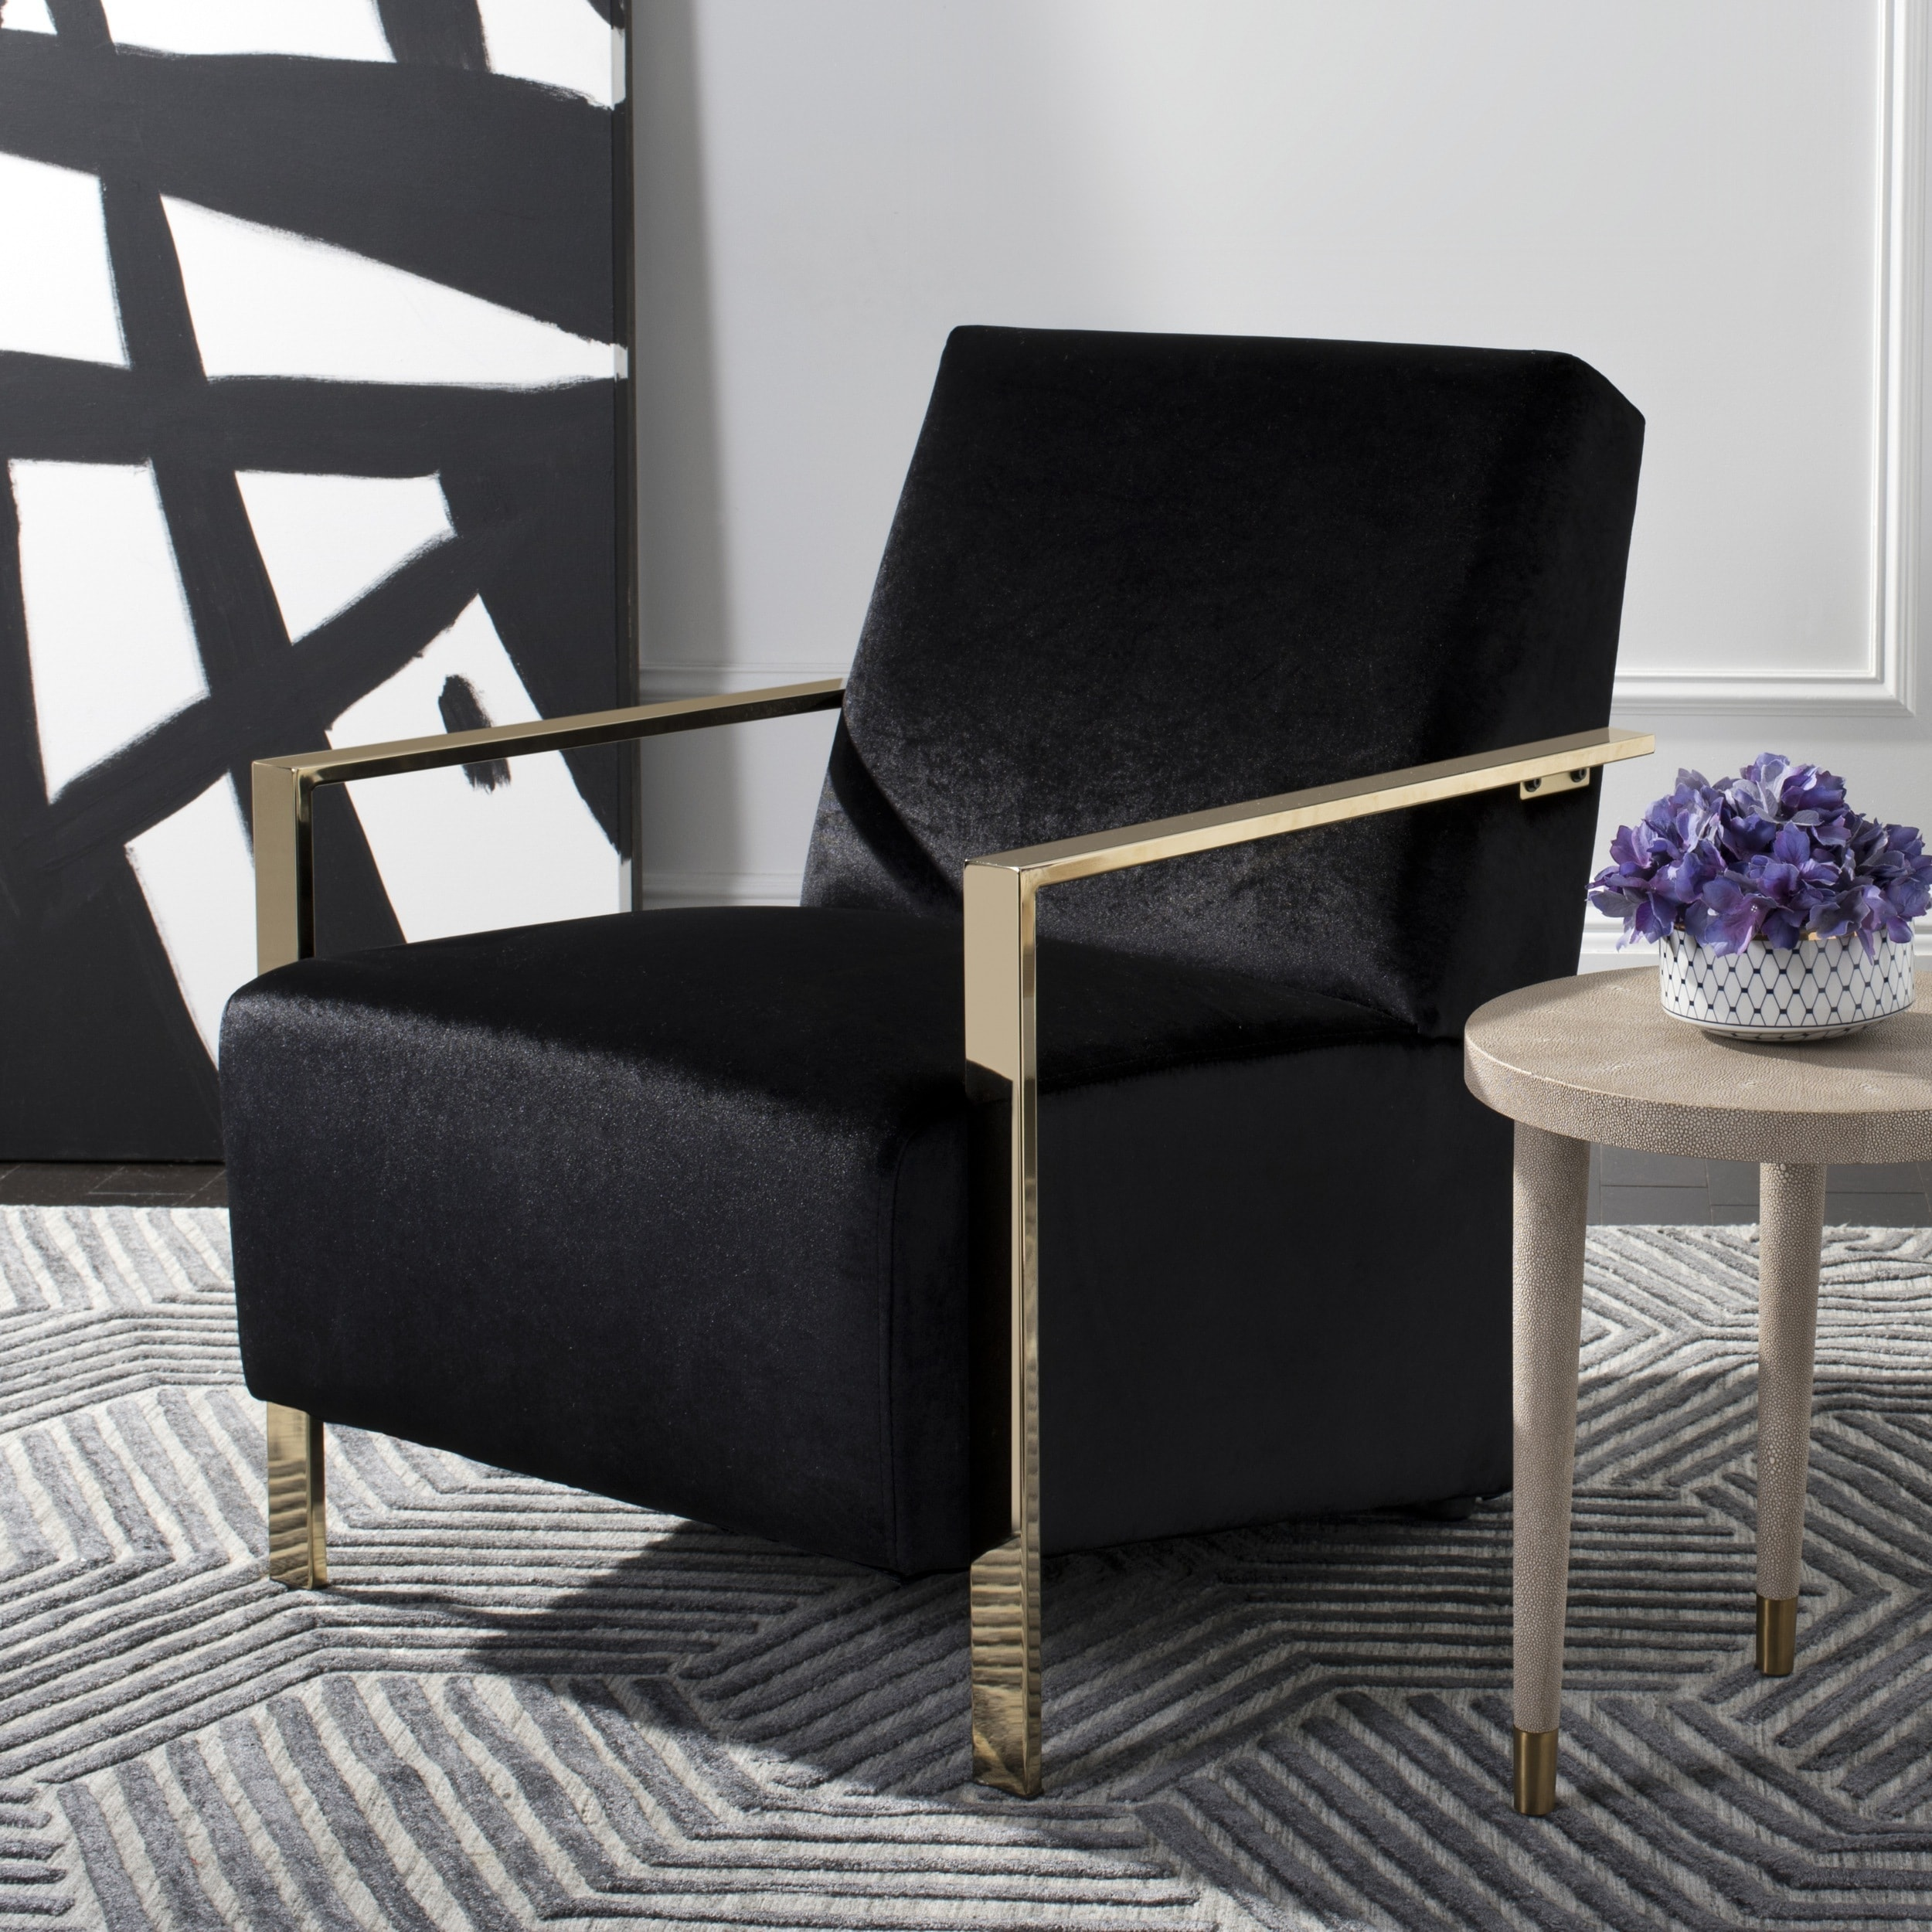 brookstone bungee chair where to nail rail black accent chairs fabric oliver